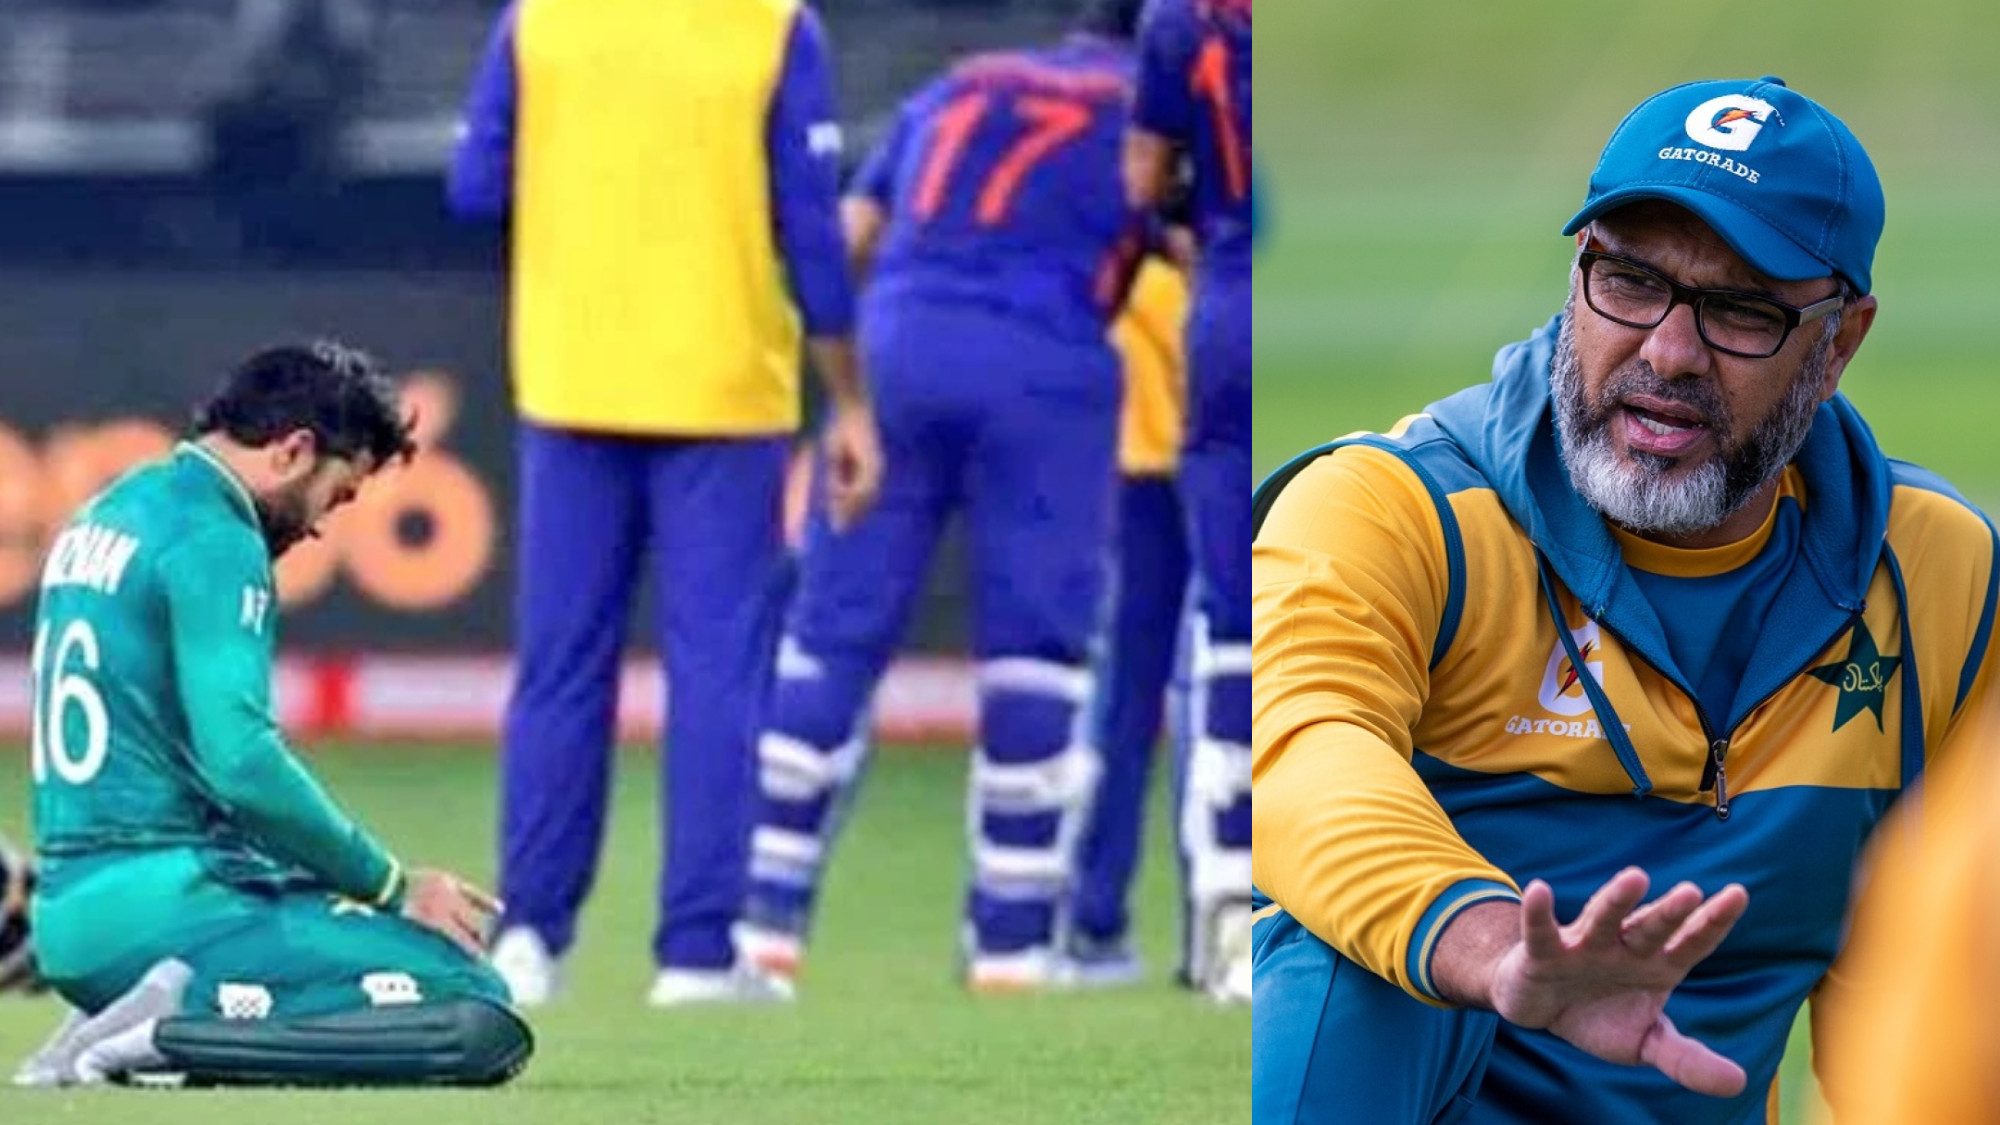 T20 World Cup 2021: Waqar Younis says Mohd Rizwan doing Namaz amidst Hindu Indian players was special to him